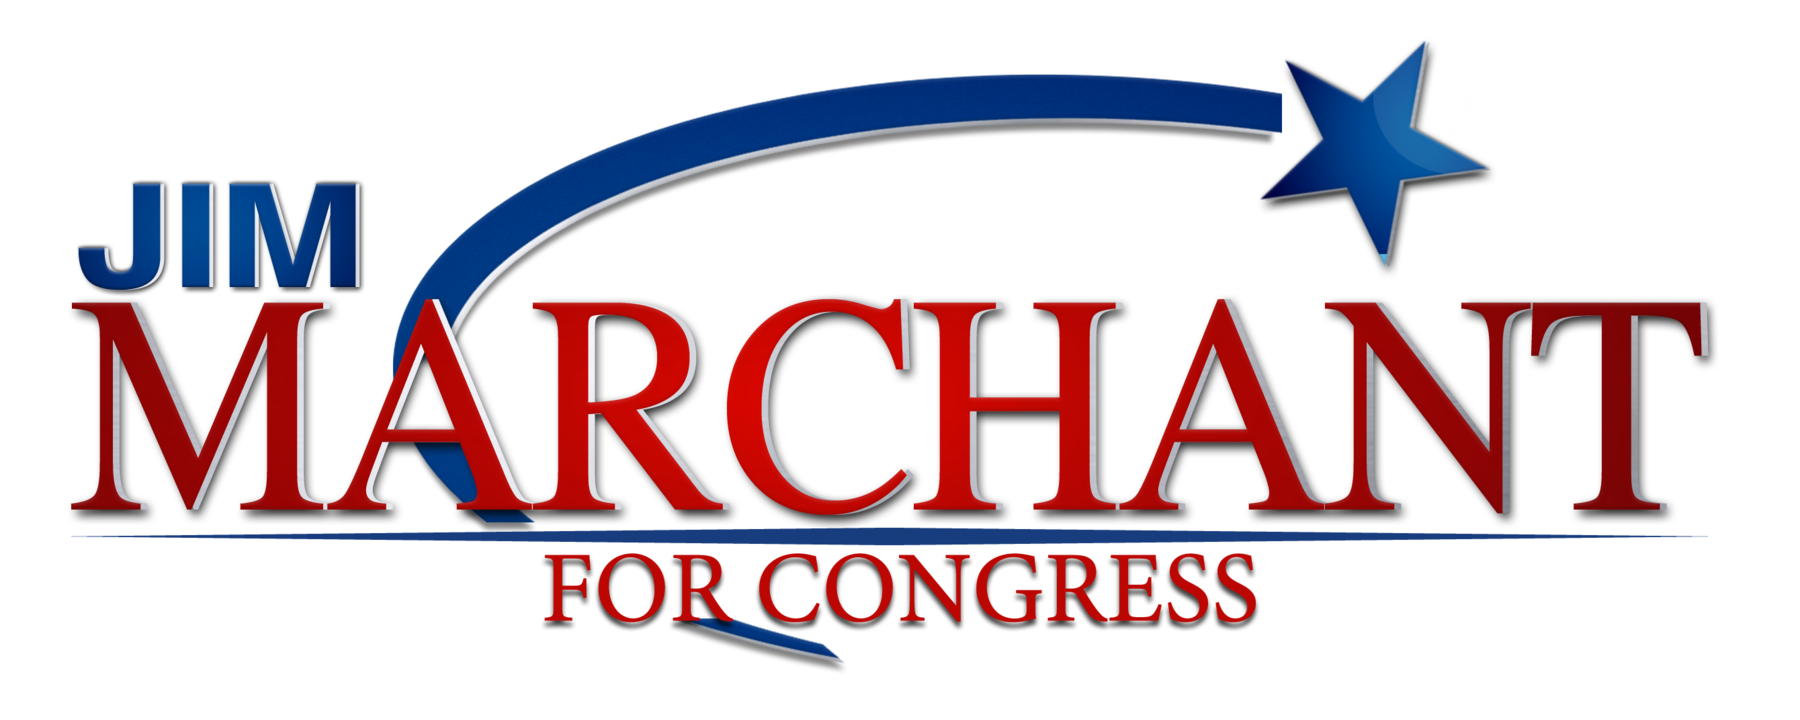 Marchant for Congress: Website Splash